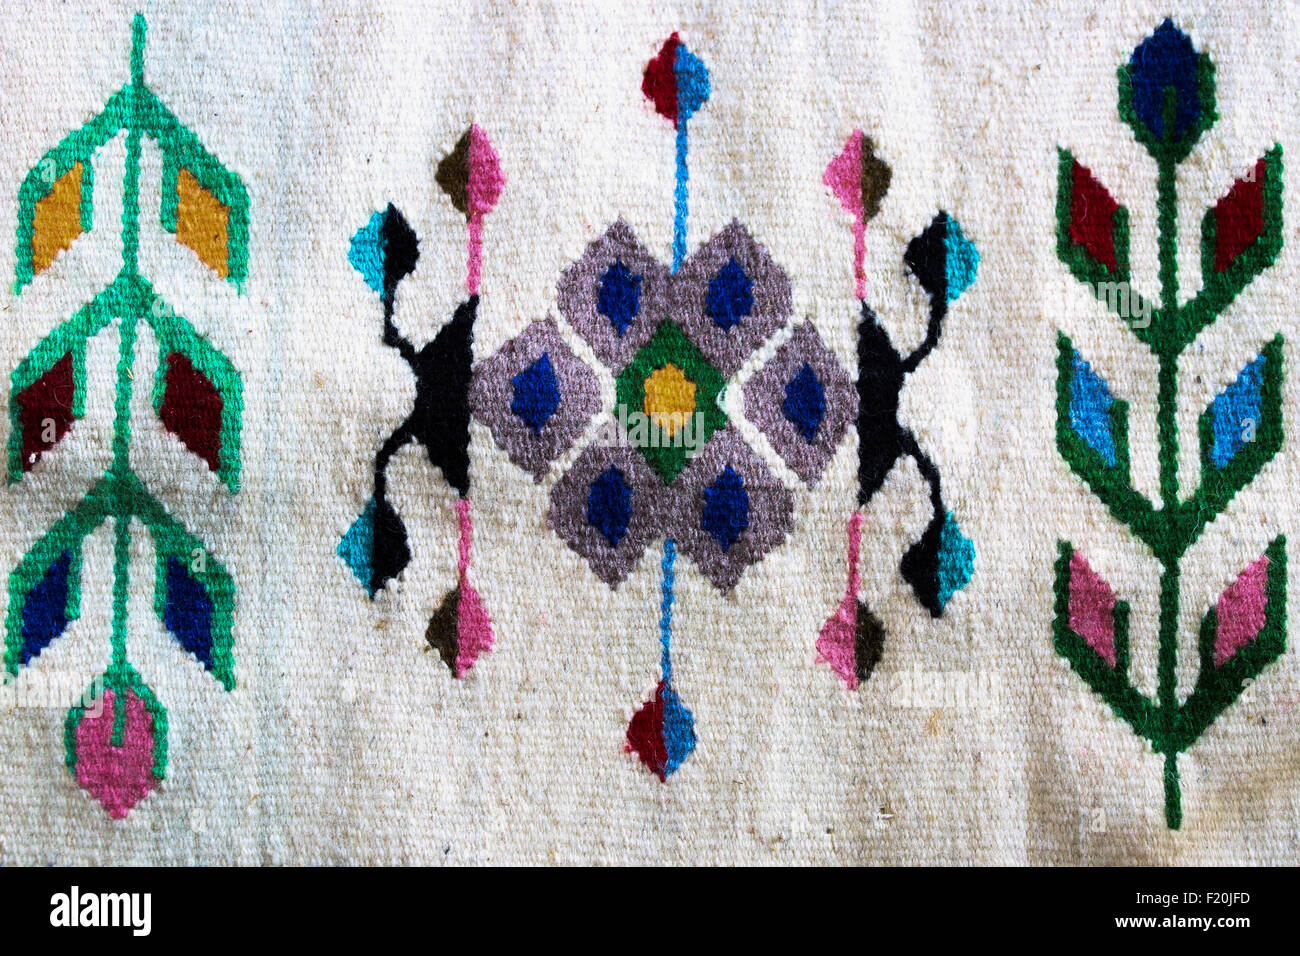 Detail of a traditional handloomed rugs from Romanian. - Stock Image